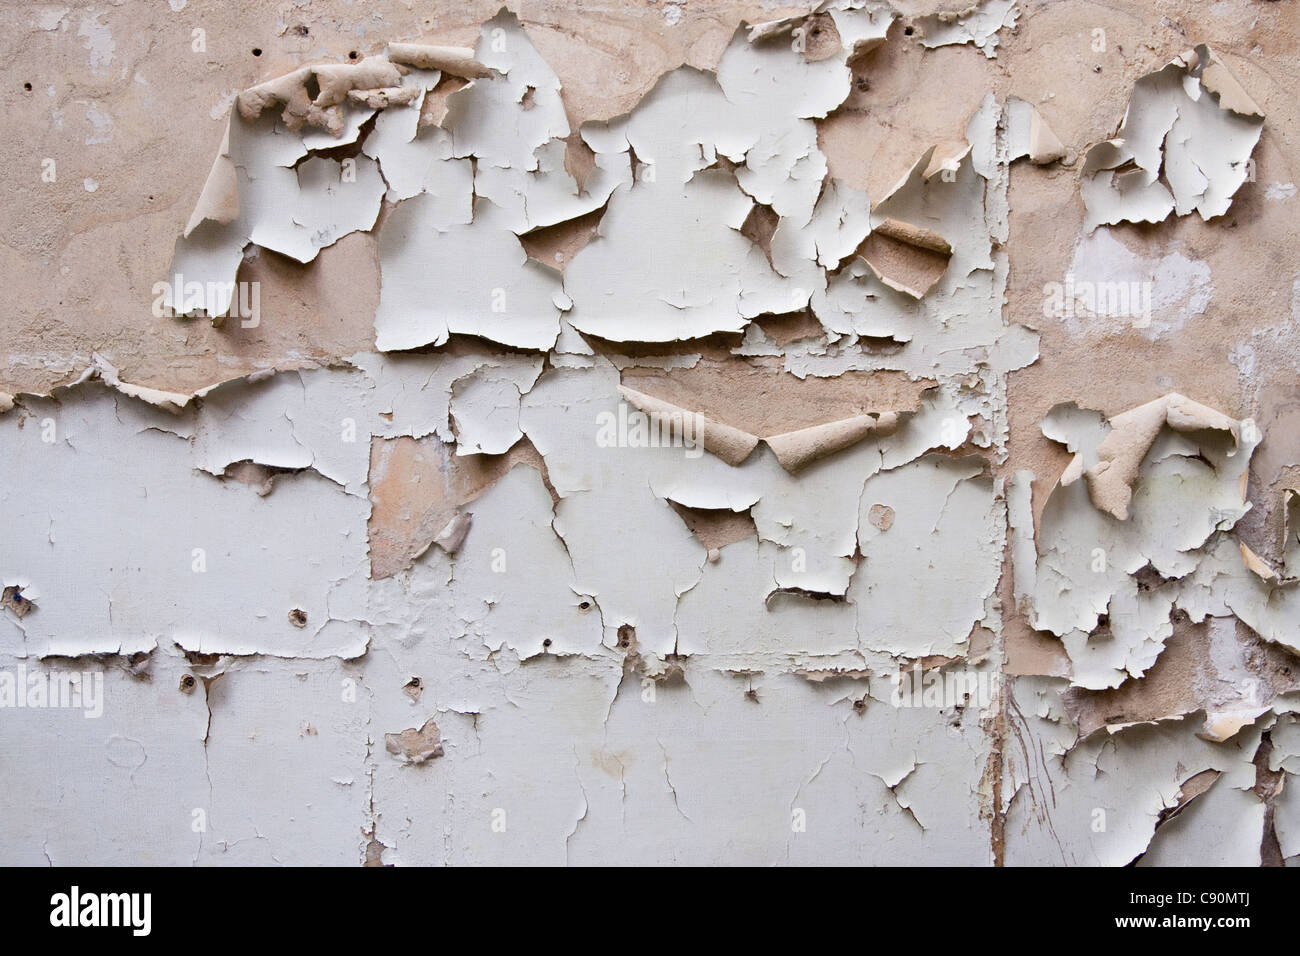 Flaking Paint On Interior Walls Peeling Wall Free Backgrounds And Textures Peeling Paint On